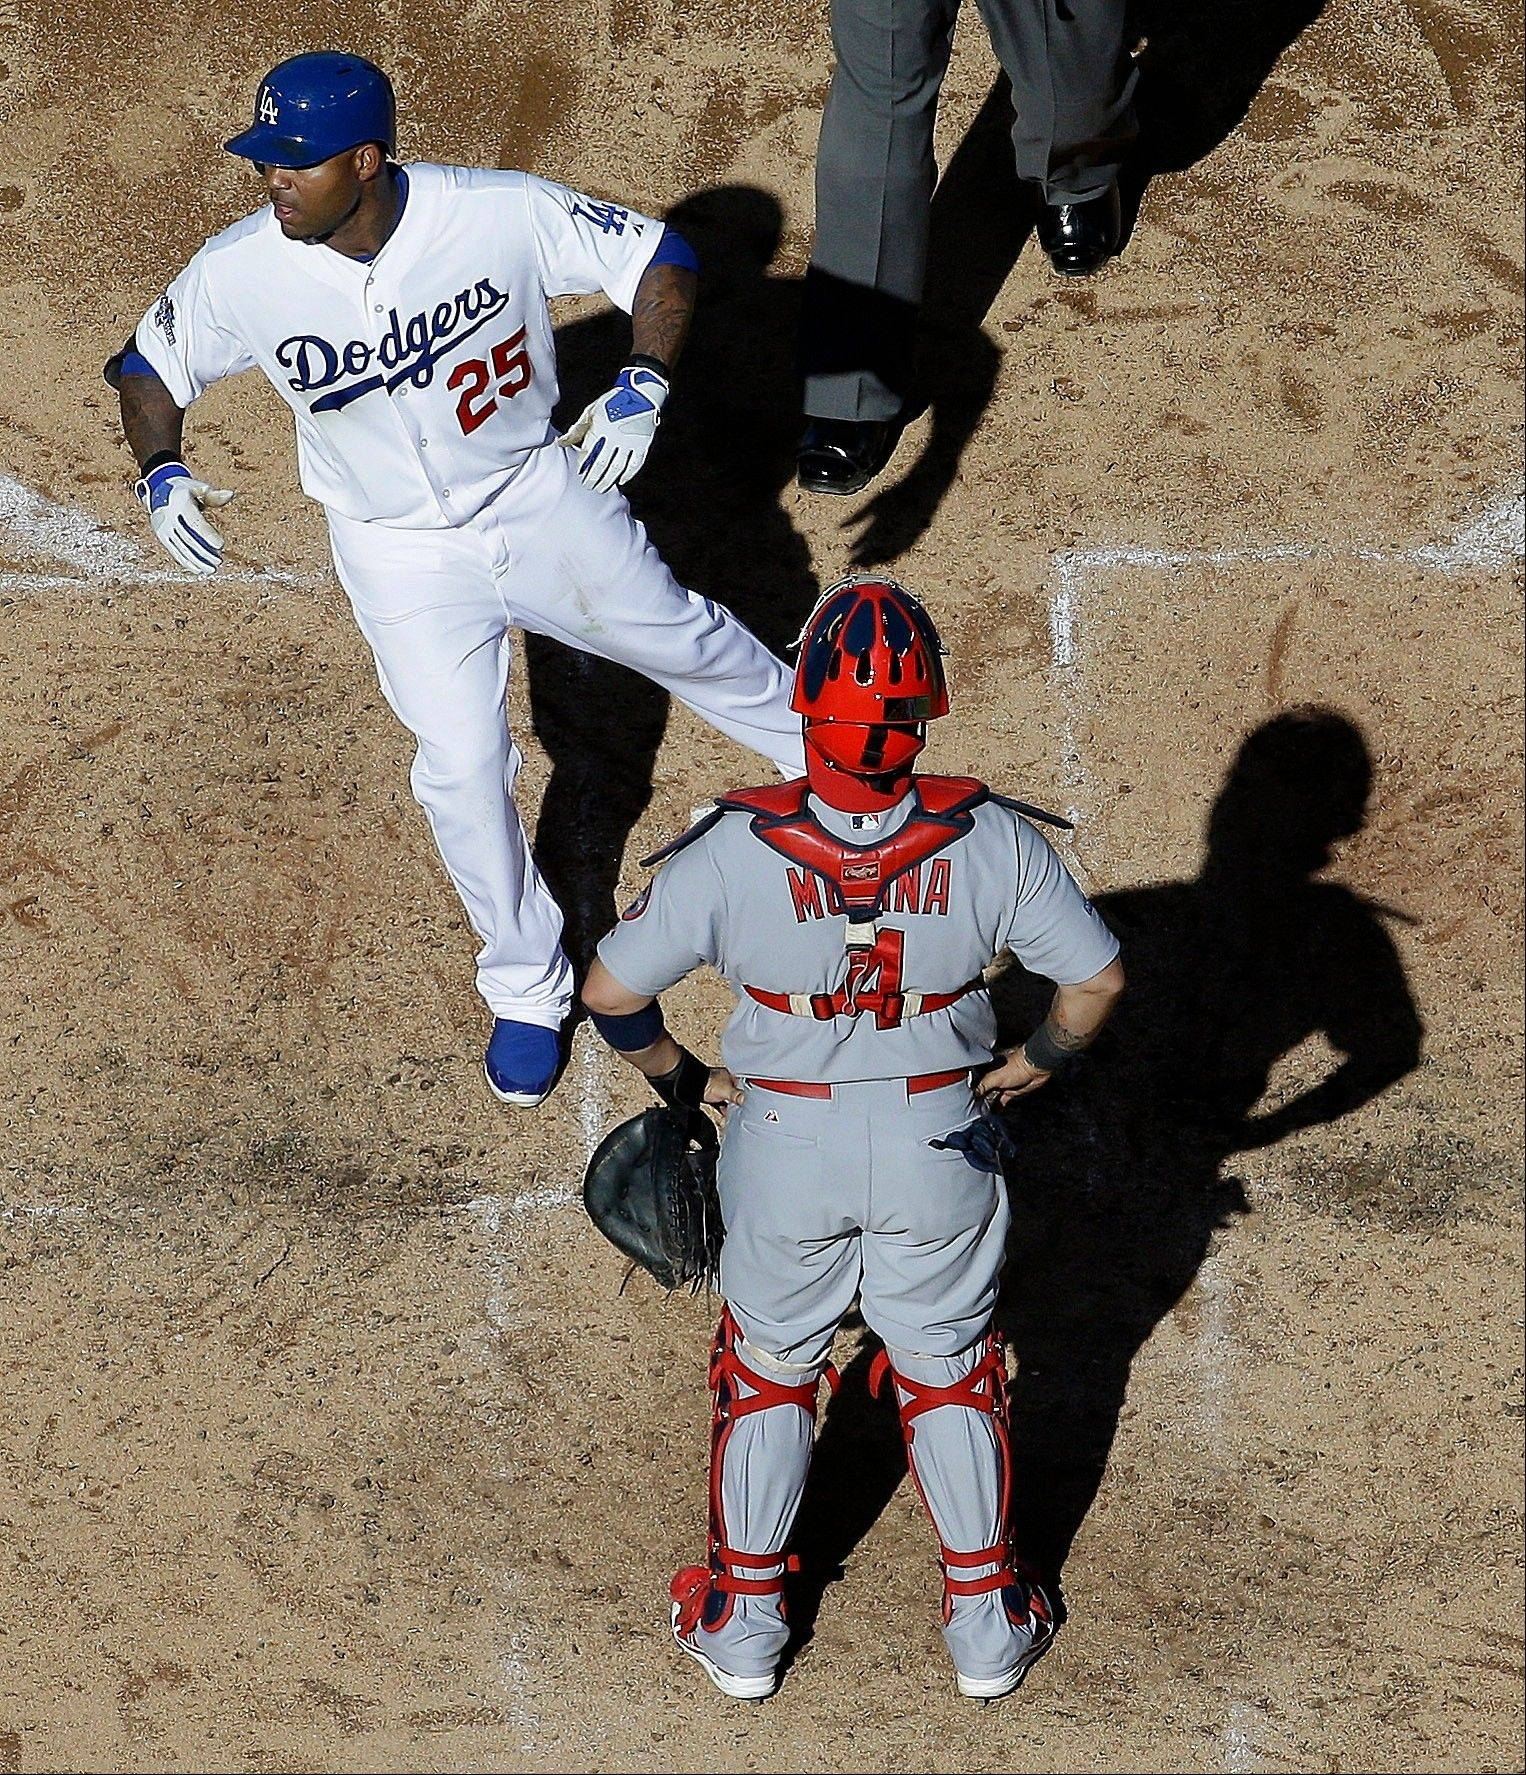 Cardinals catcher Yadier Molina watches as the Dodgers' Carl Crawford crosses home after hitting a home run during the fifth inning.